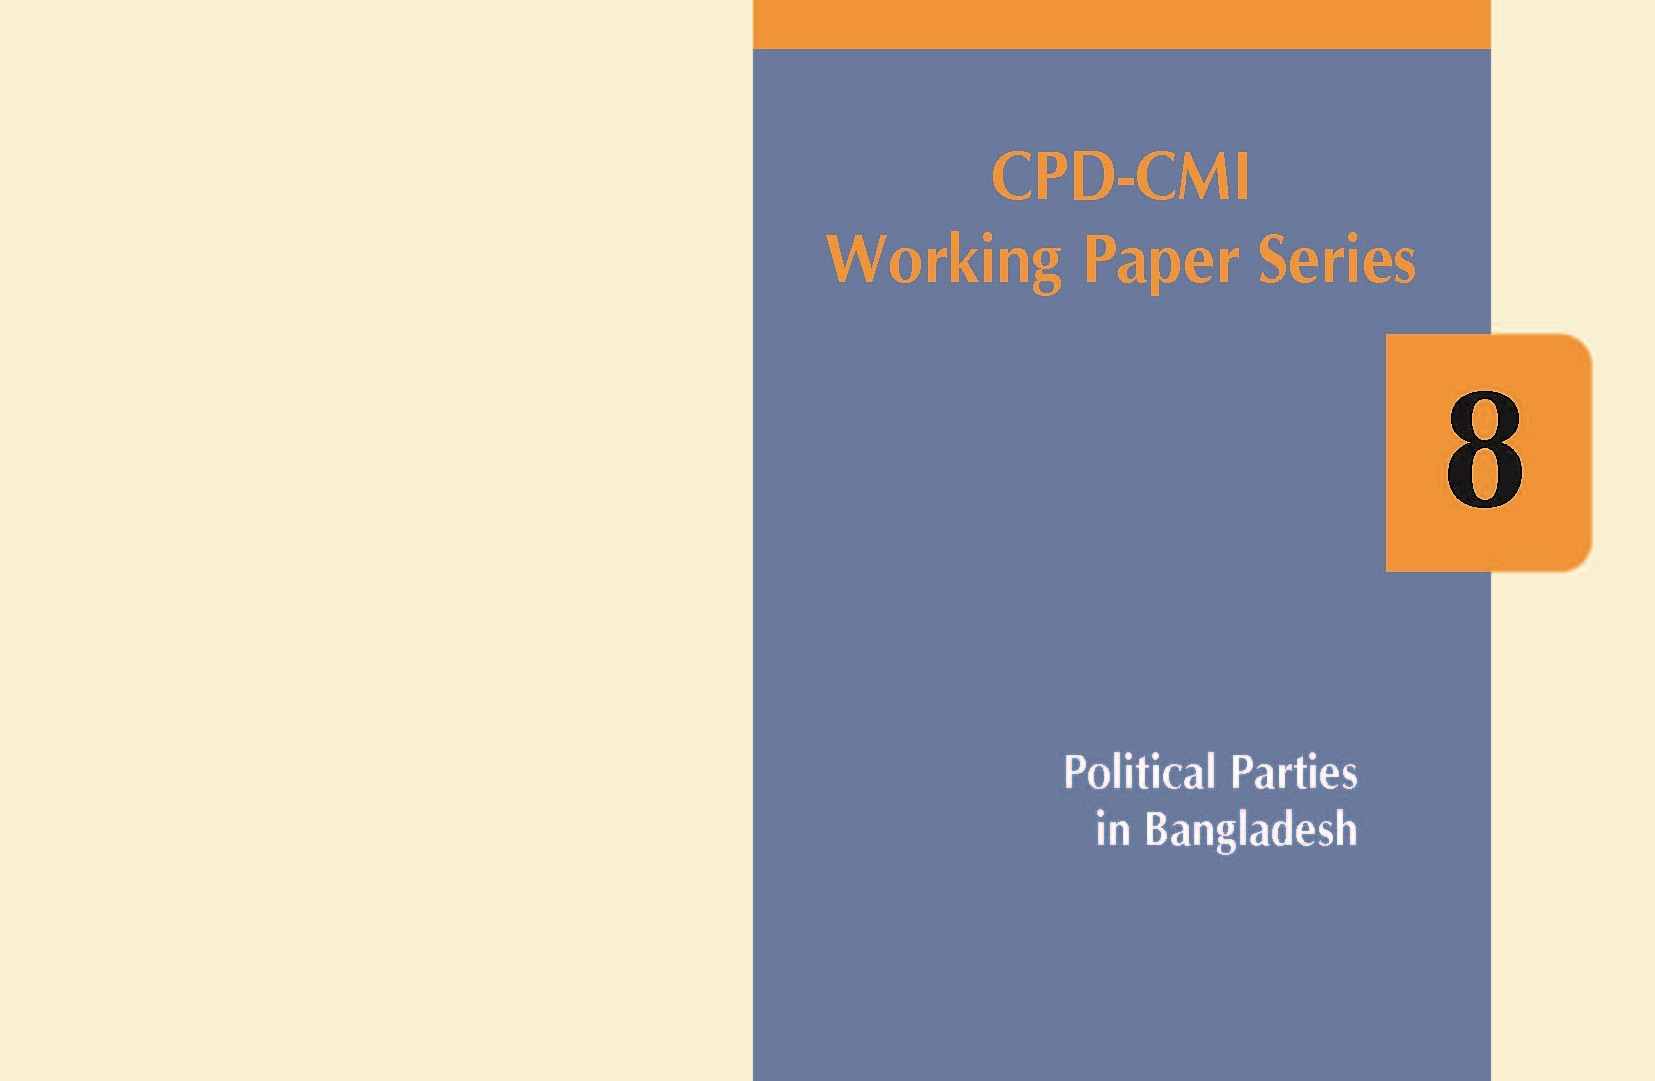 CPD-CMI Working Paper 8